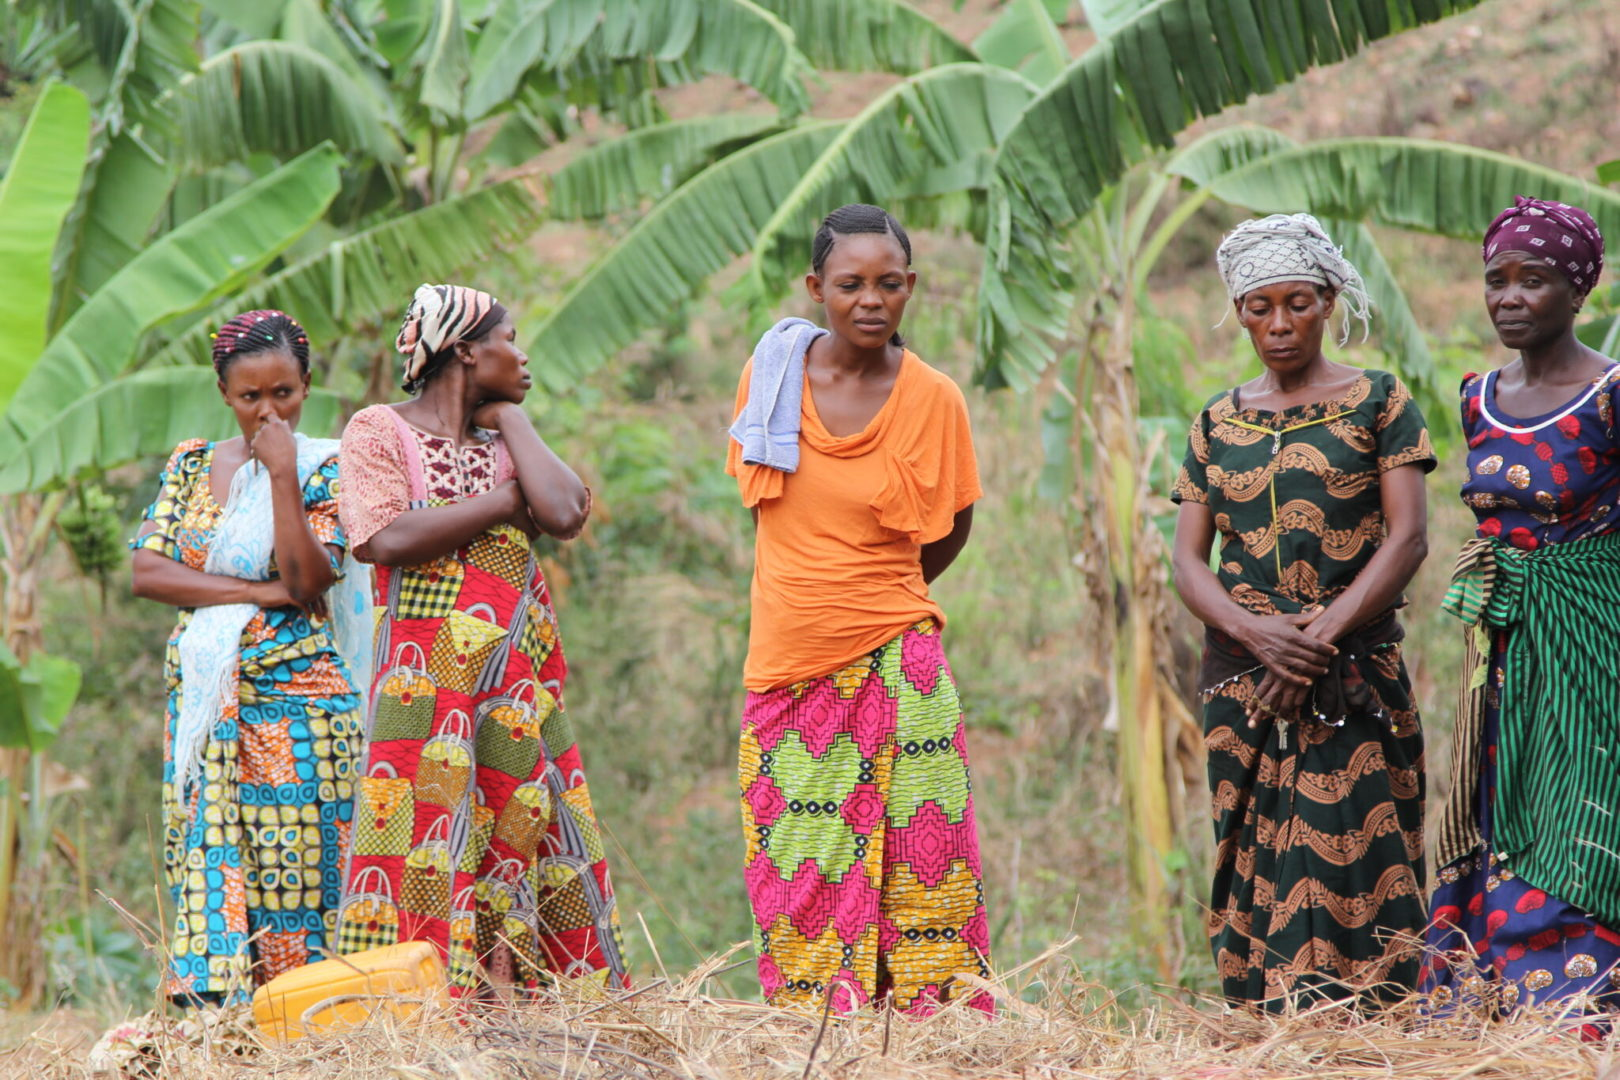 Women in the Democratic Republic of Congo build climate resilience